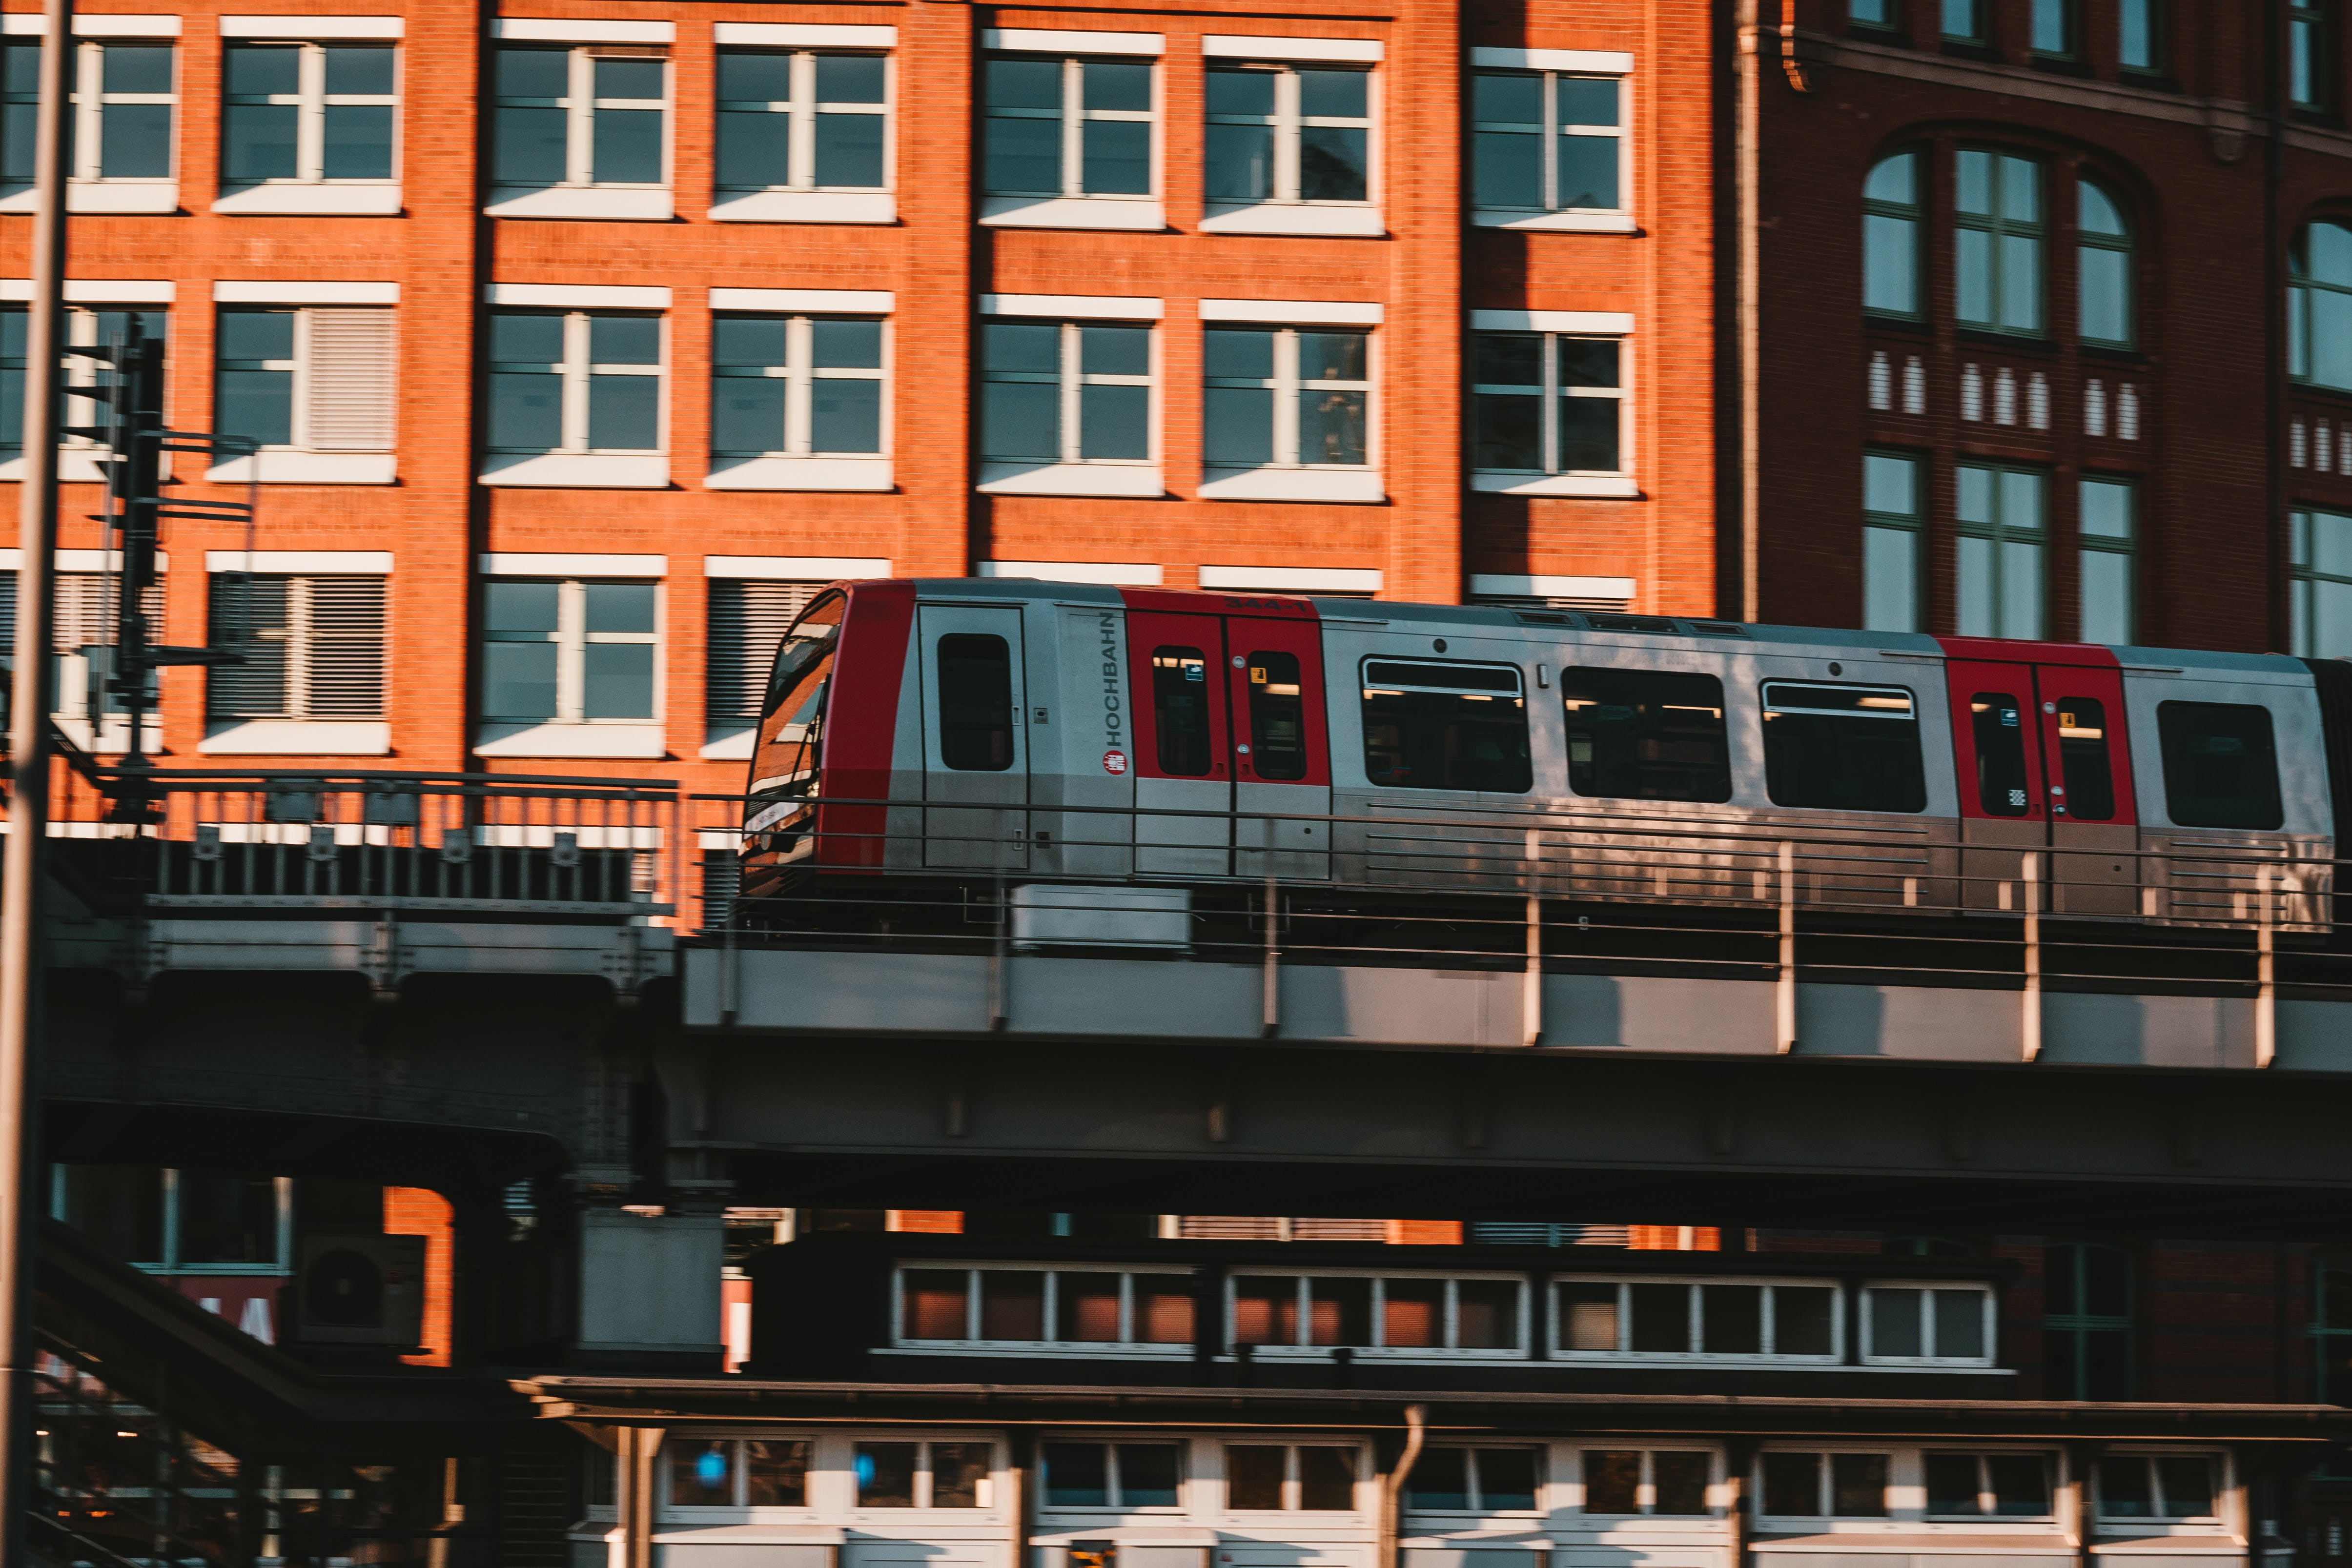 White and Red Train Near Brown Concrete Building